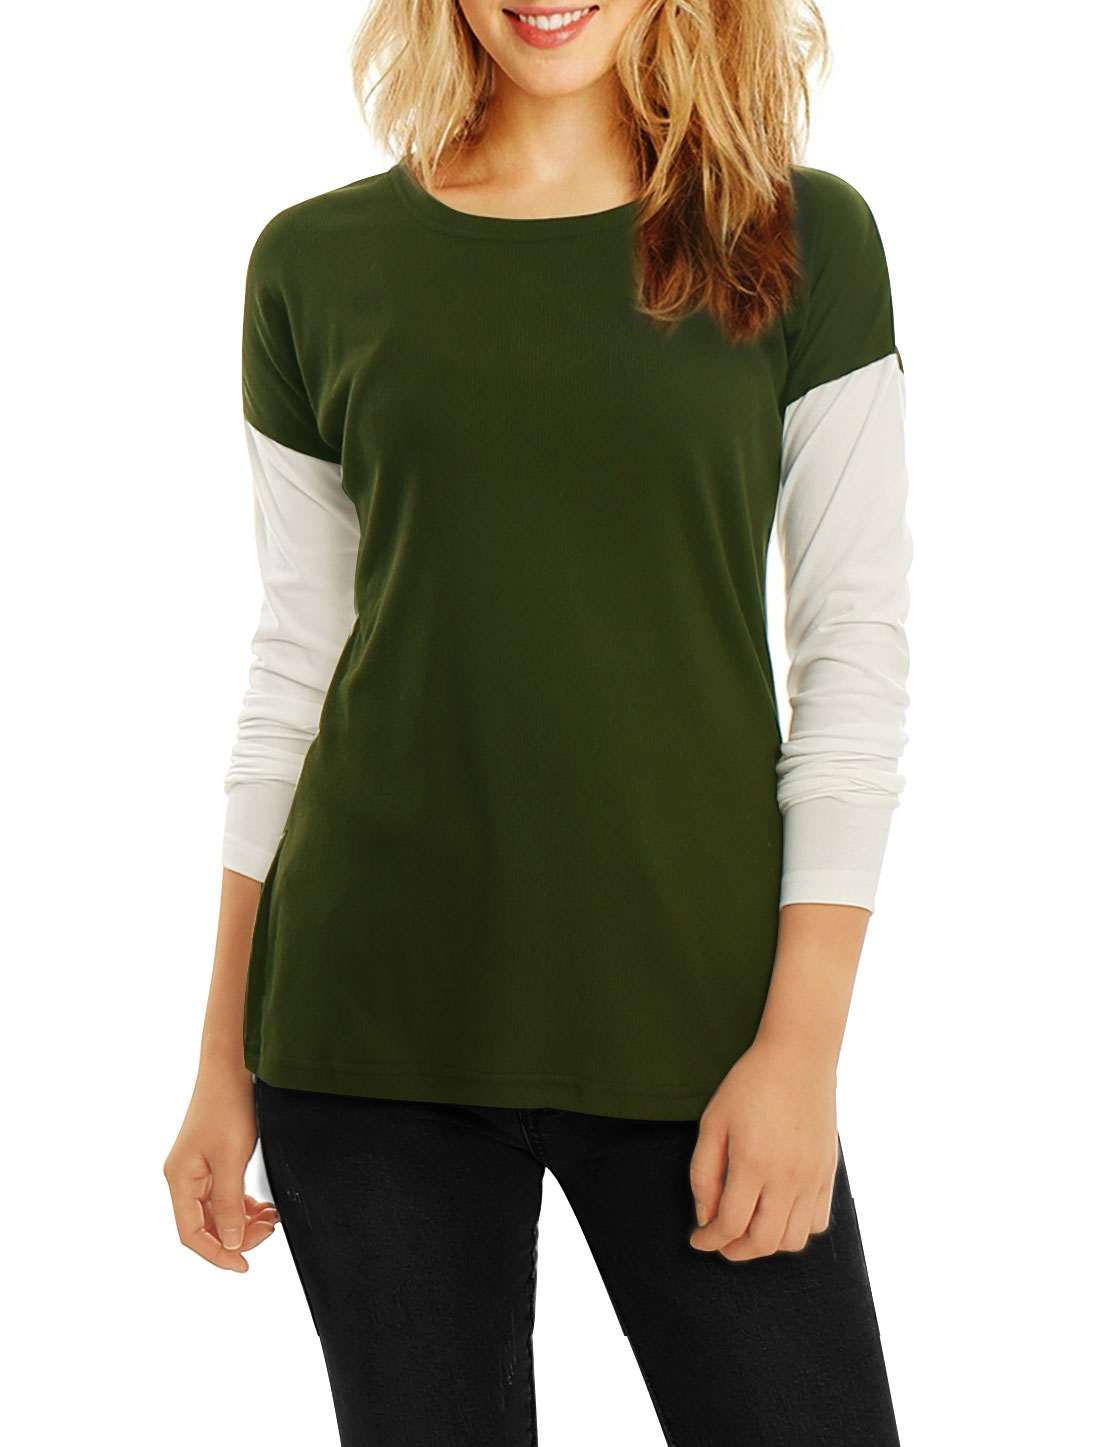 Women Color Block Side-Slit Paneled Slim Fit Ribbed Top Green XS